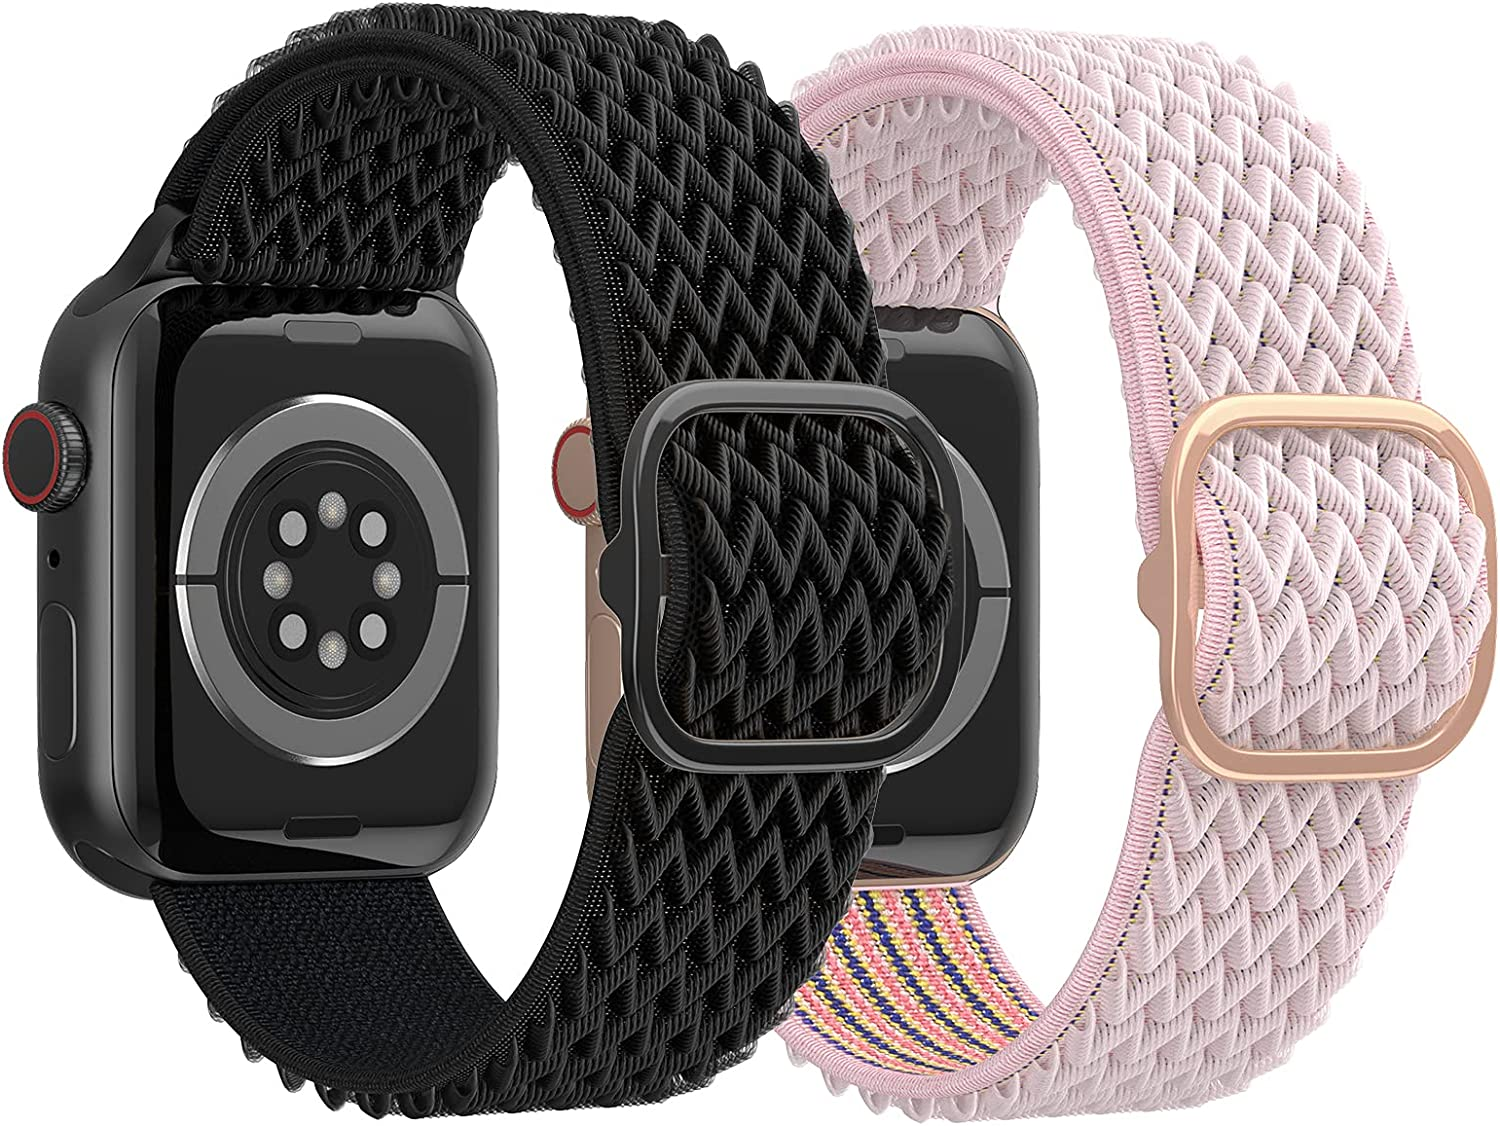 Mosstek Stretchy Solo Loop Compatible with Apple Watch 38mm 40mm Bands Women Men for iWatch Series 3 5 6 SE 4 2 1, 2 Pack Soft Nylon Strap Braided Elastic Adjustable Bracelet, All Black+PinkSand